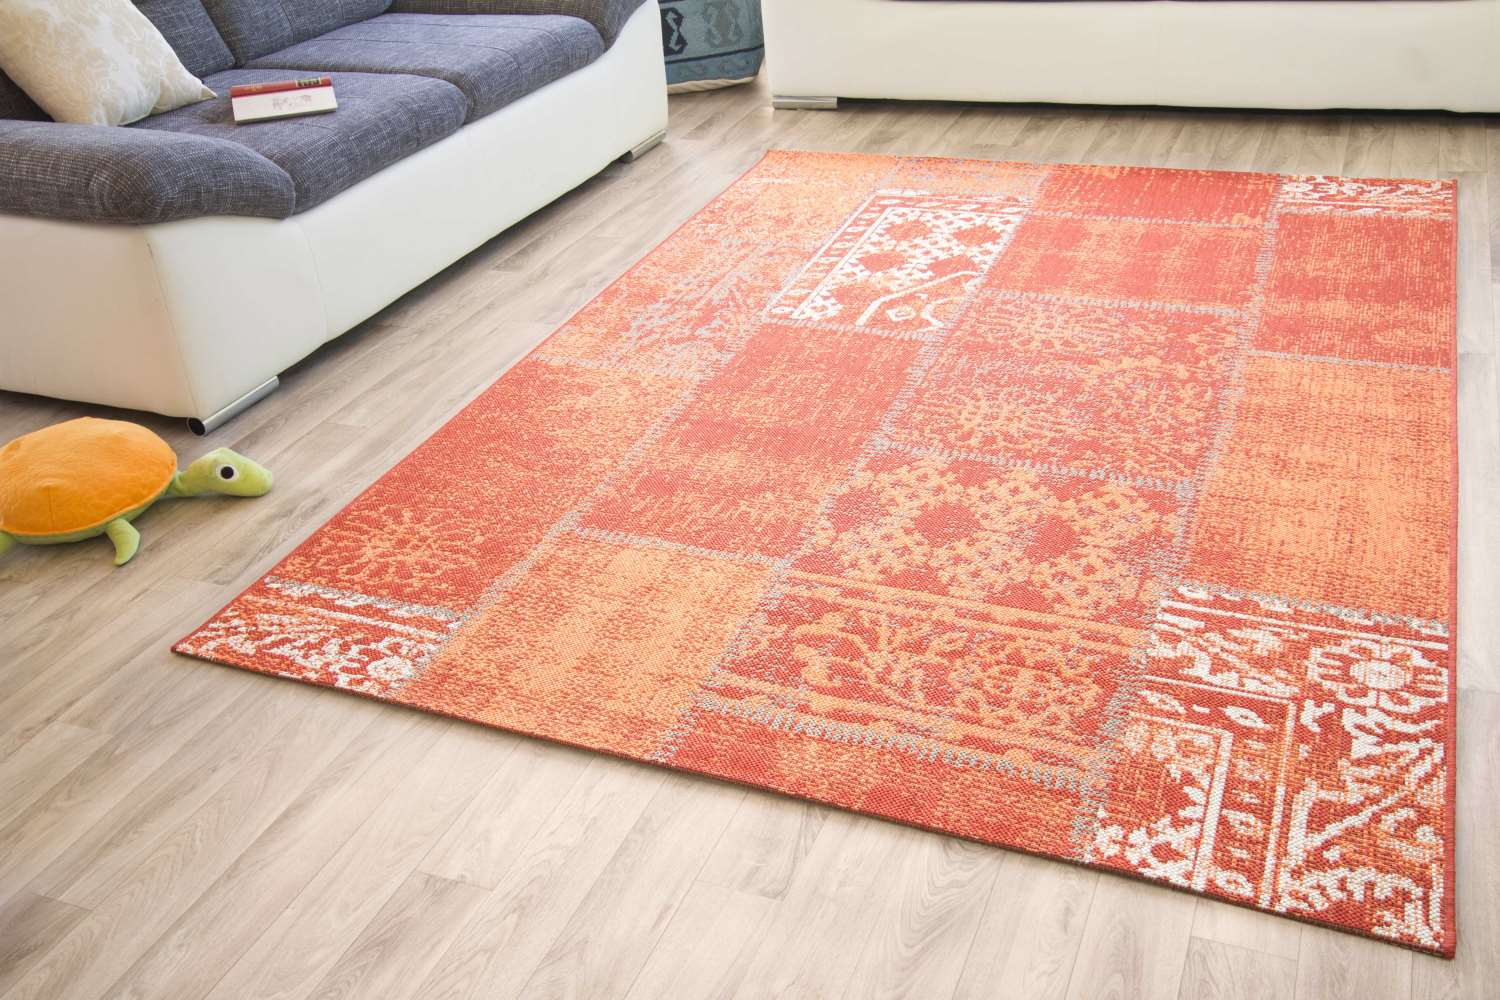 Outdoor Teppich Rot : in und outdoor teppich dalarna design vintage global carpet ~ Frokenaadalensverden.com Haus und Dekorationen